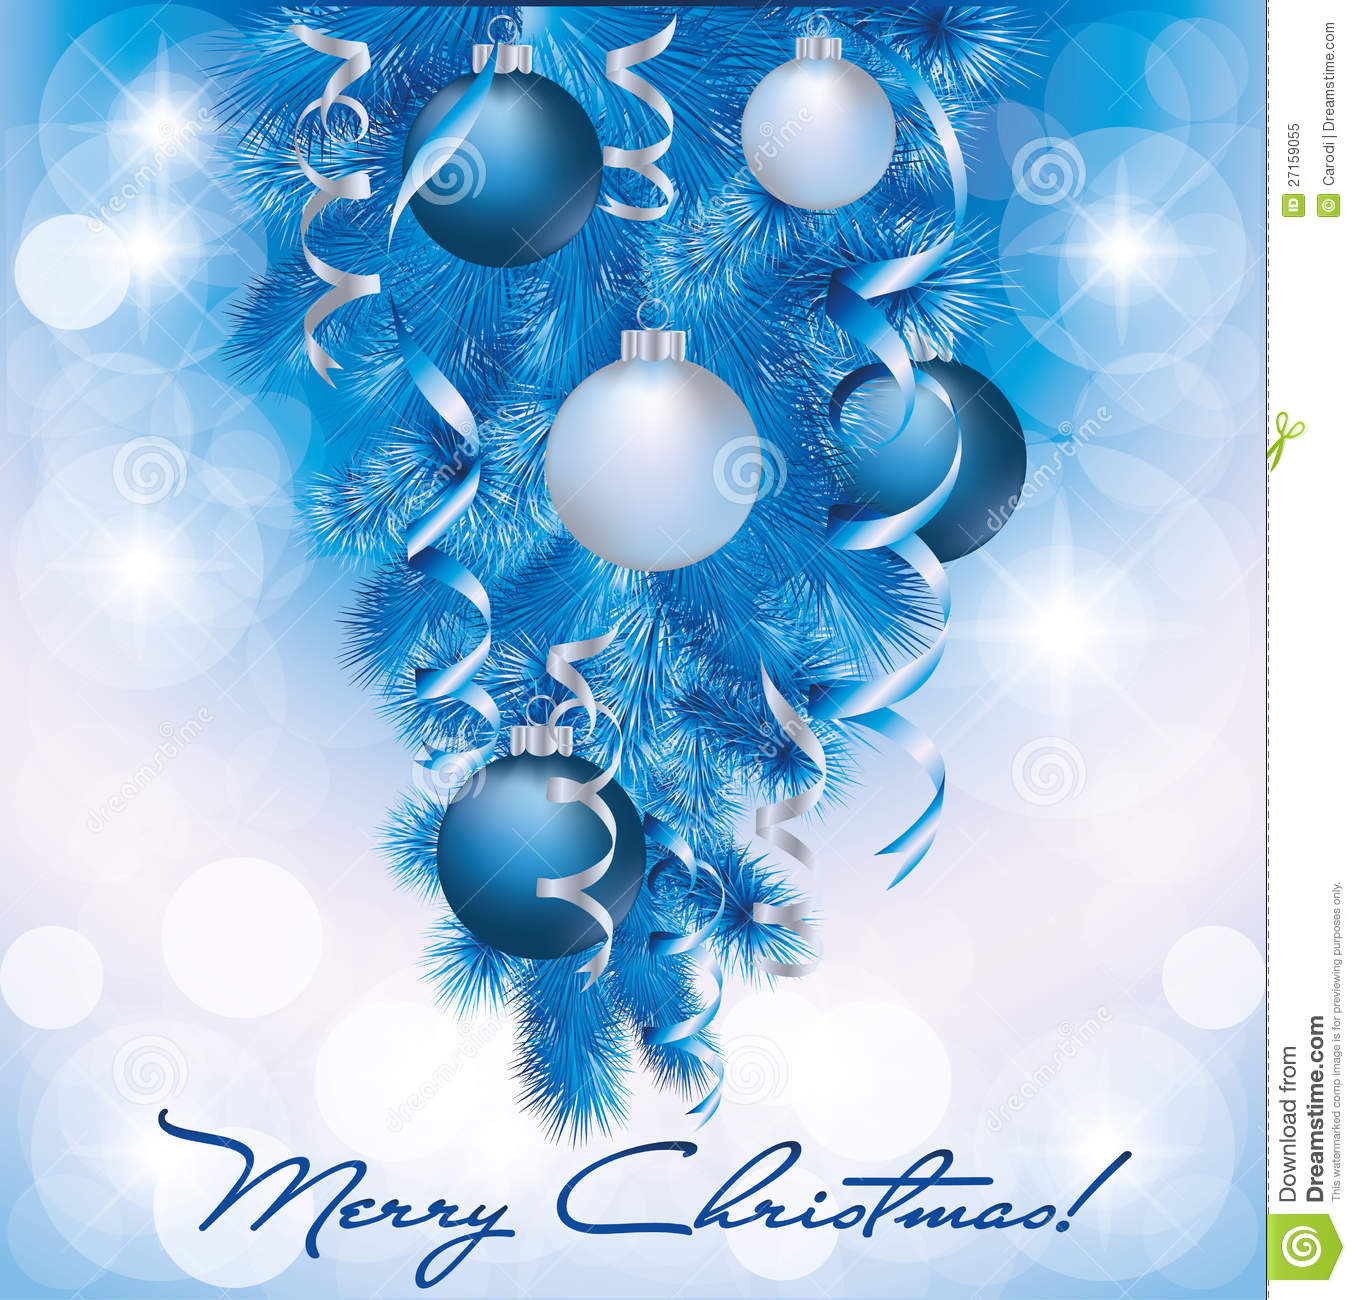 merry christmas banner with blue silver balls royalty free